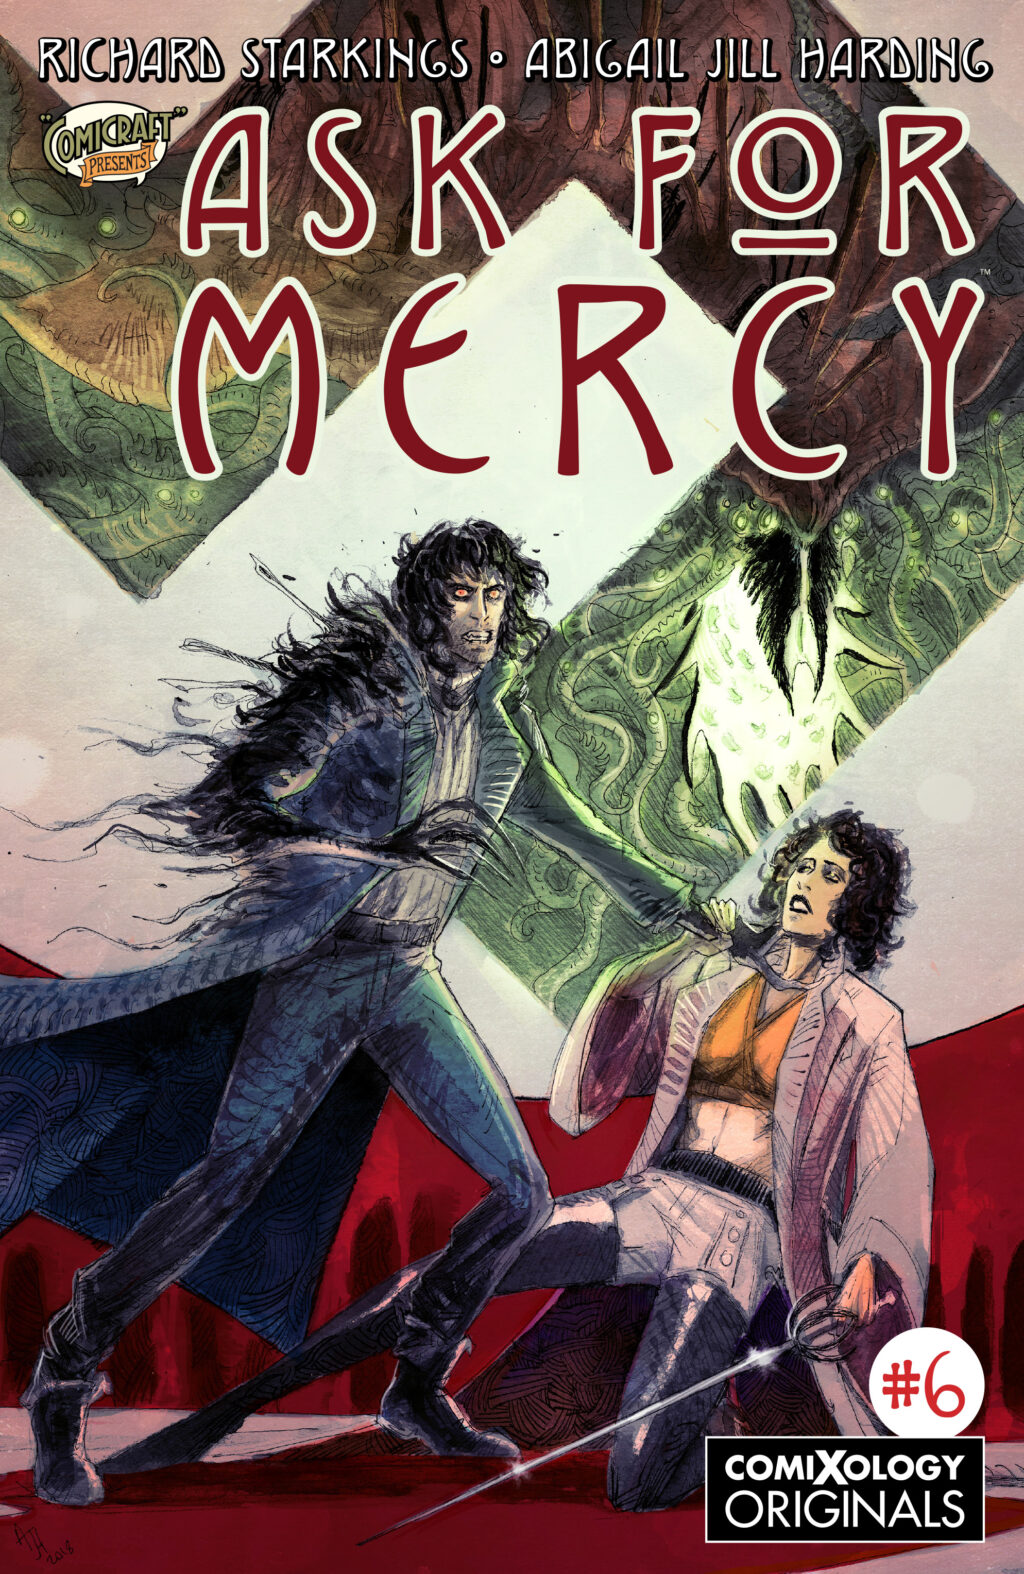 Ask.For .Mercy .cO .6.COVER  1024x1574 - Exclusive Preview of comiXology Originals' ASK FOR MERCY #6